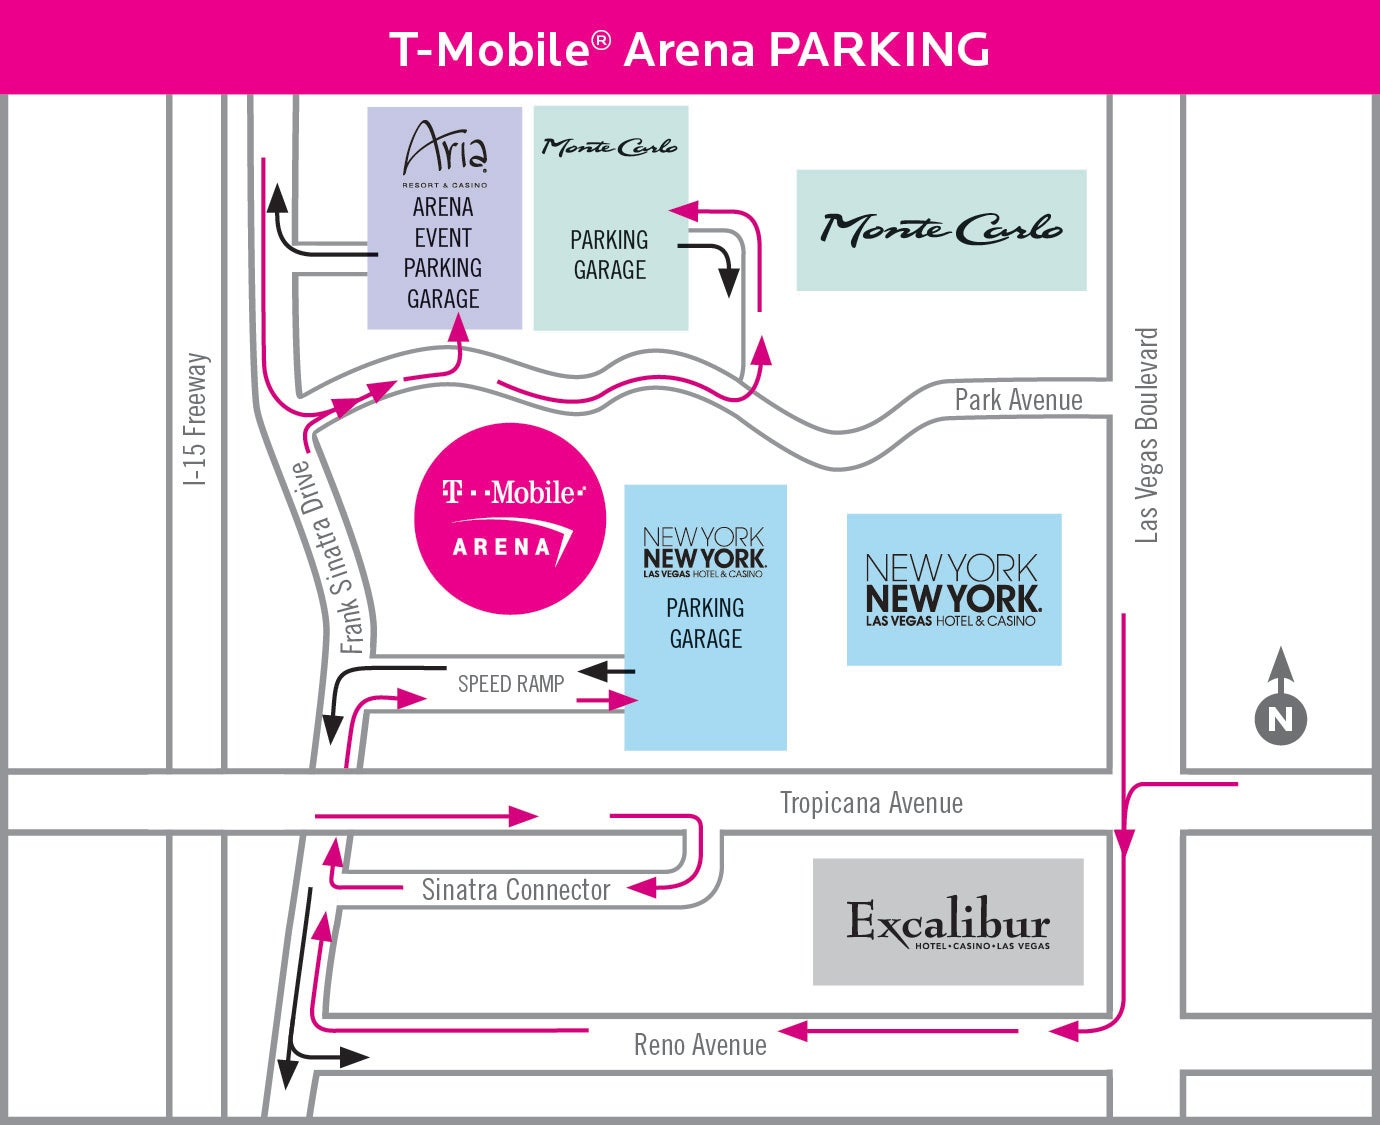 FINAL TMA Epicenter Parking Guide With Frame-4.6x3.75.jpg